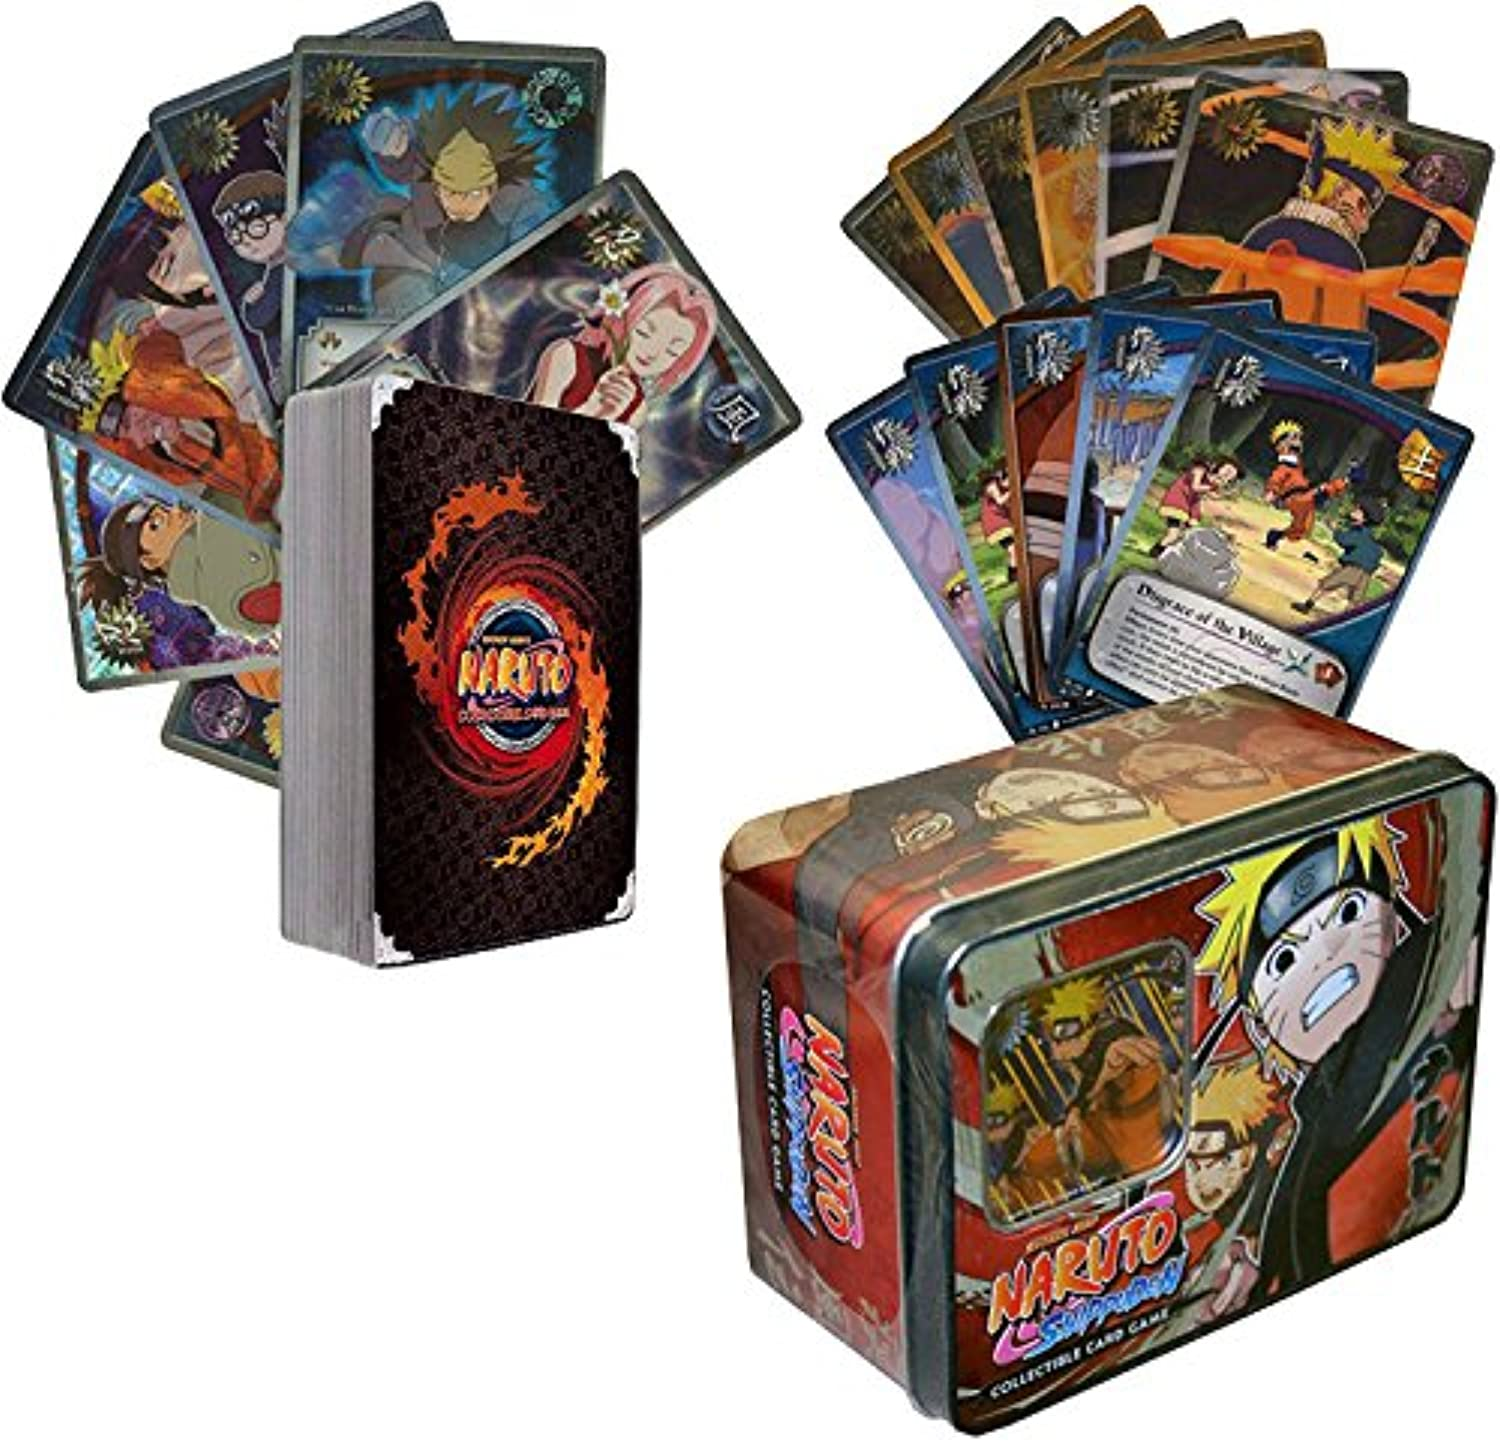 100 Assorted Naruto Collectible Cards With Rares and Foils. Includes Random Naruto Sealed Tin  By golden Groundhog